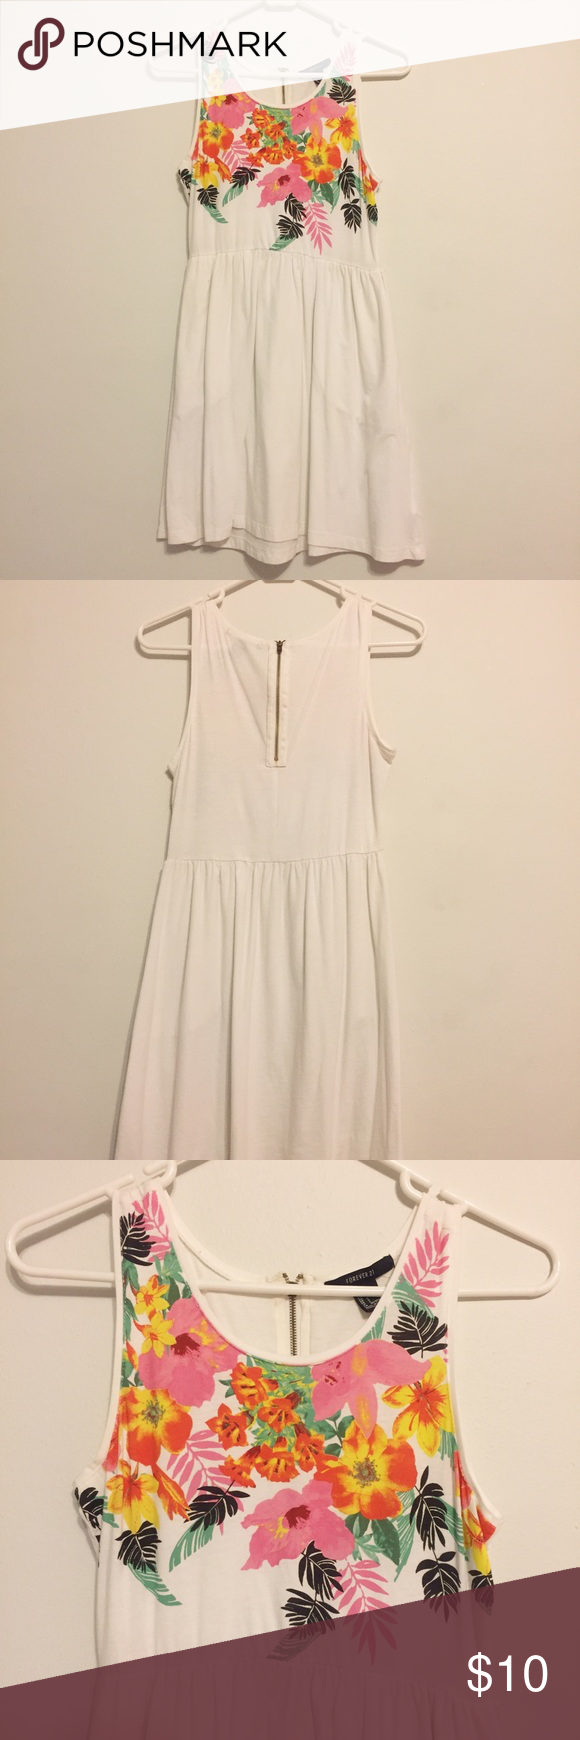 White Floral Dress White Floral Dress - Floral design on top half - Gold zipper in back - True to size (S) - Has pockets   Condition: worn once, good as new  Price is not firm, feel free to make an offer. NO TRADES. Forever 21 Dresses